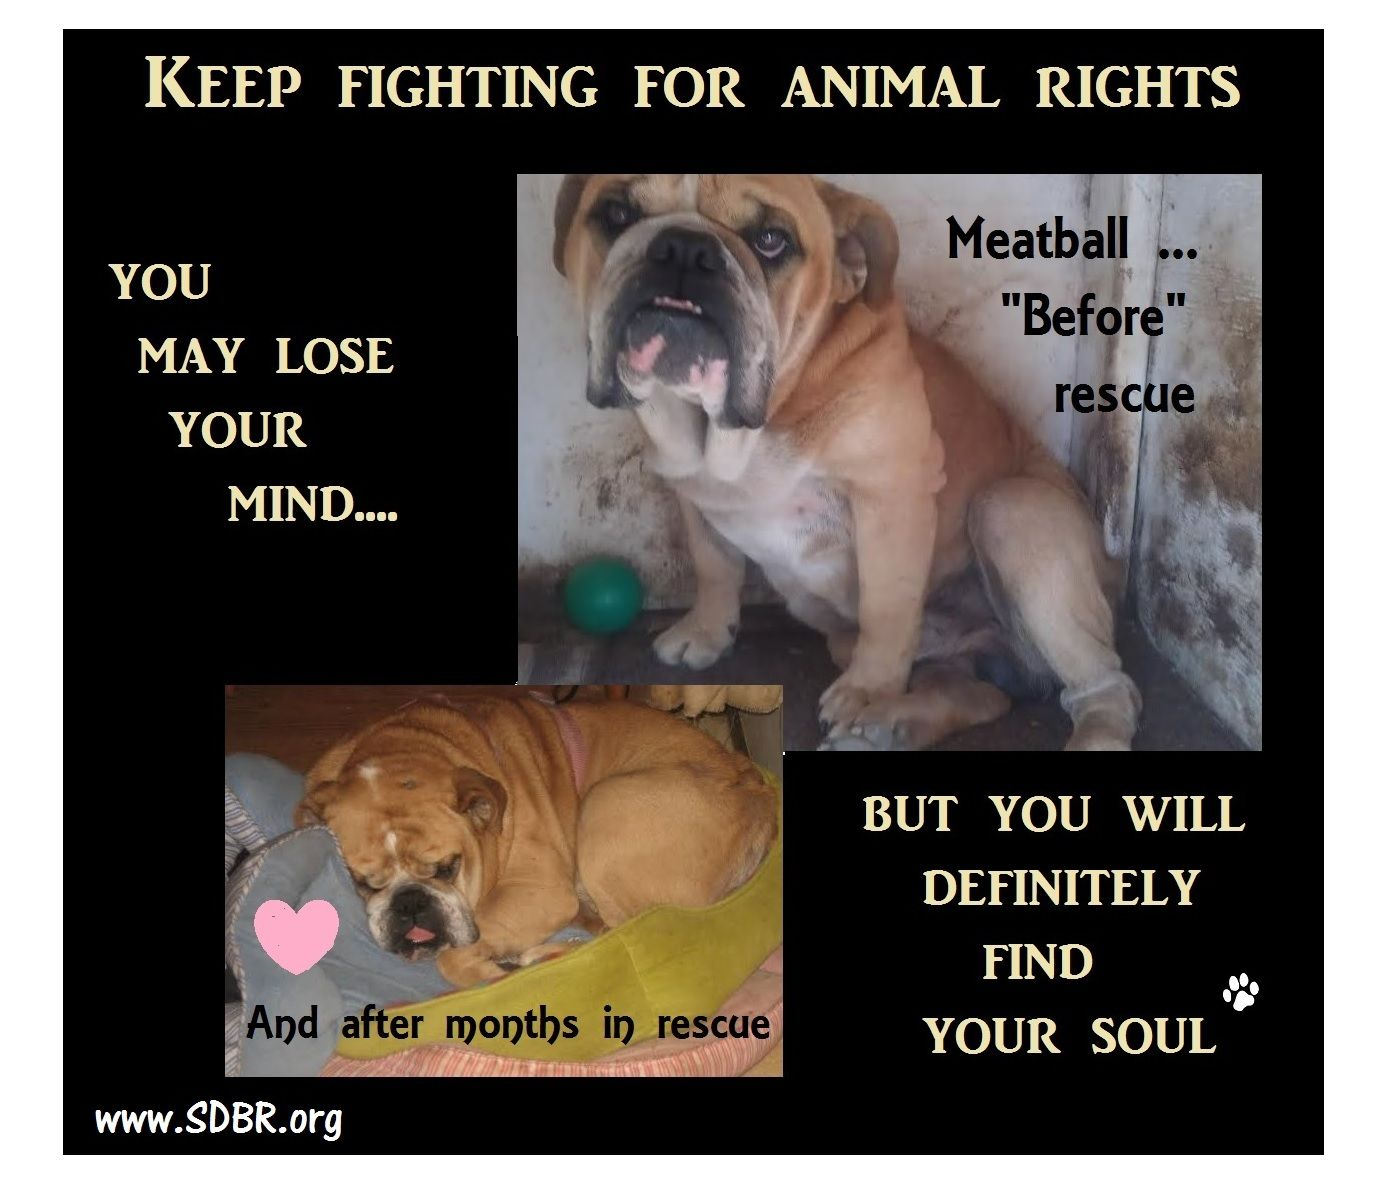 Www Sdbr Org Our Mission Is To Find Permanent Loving Homes For